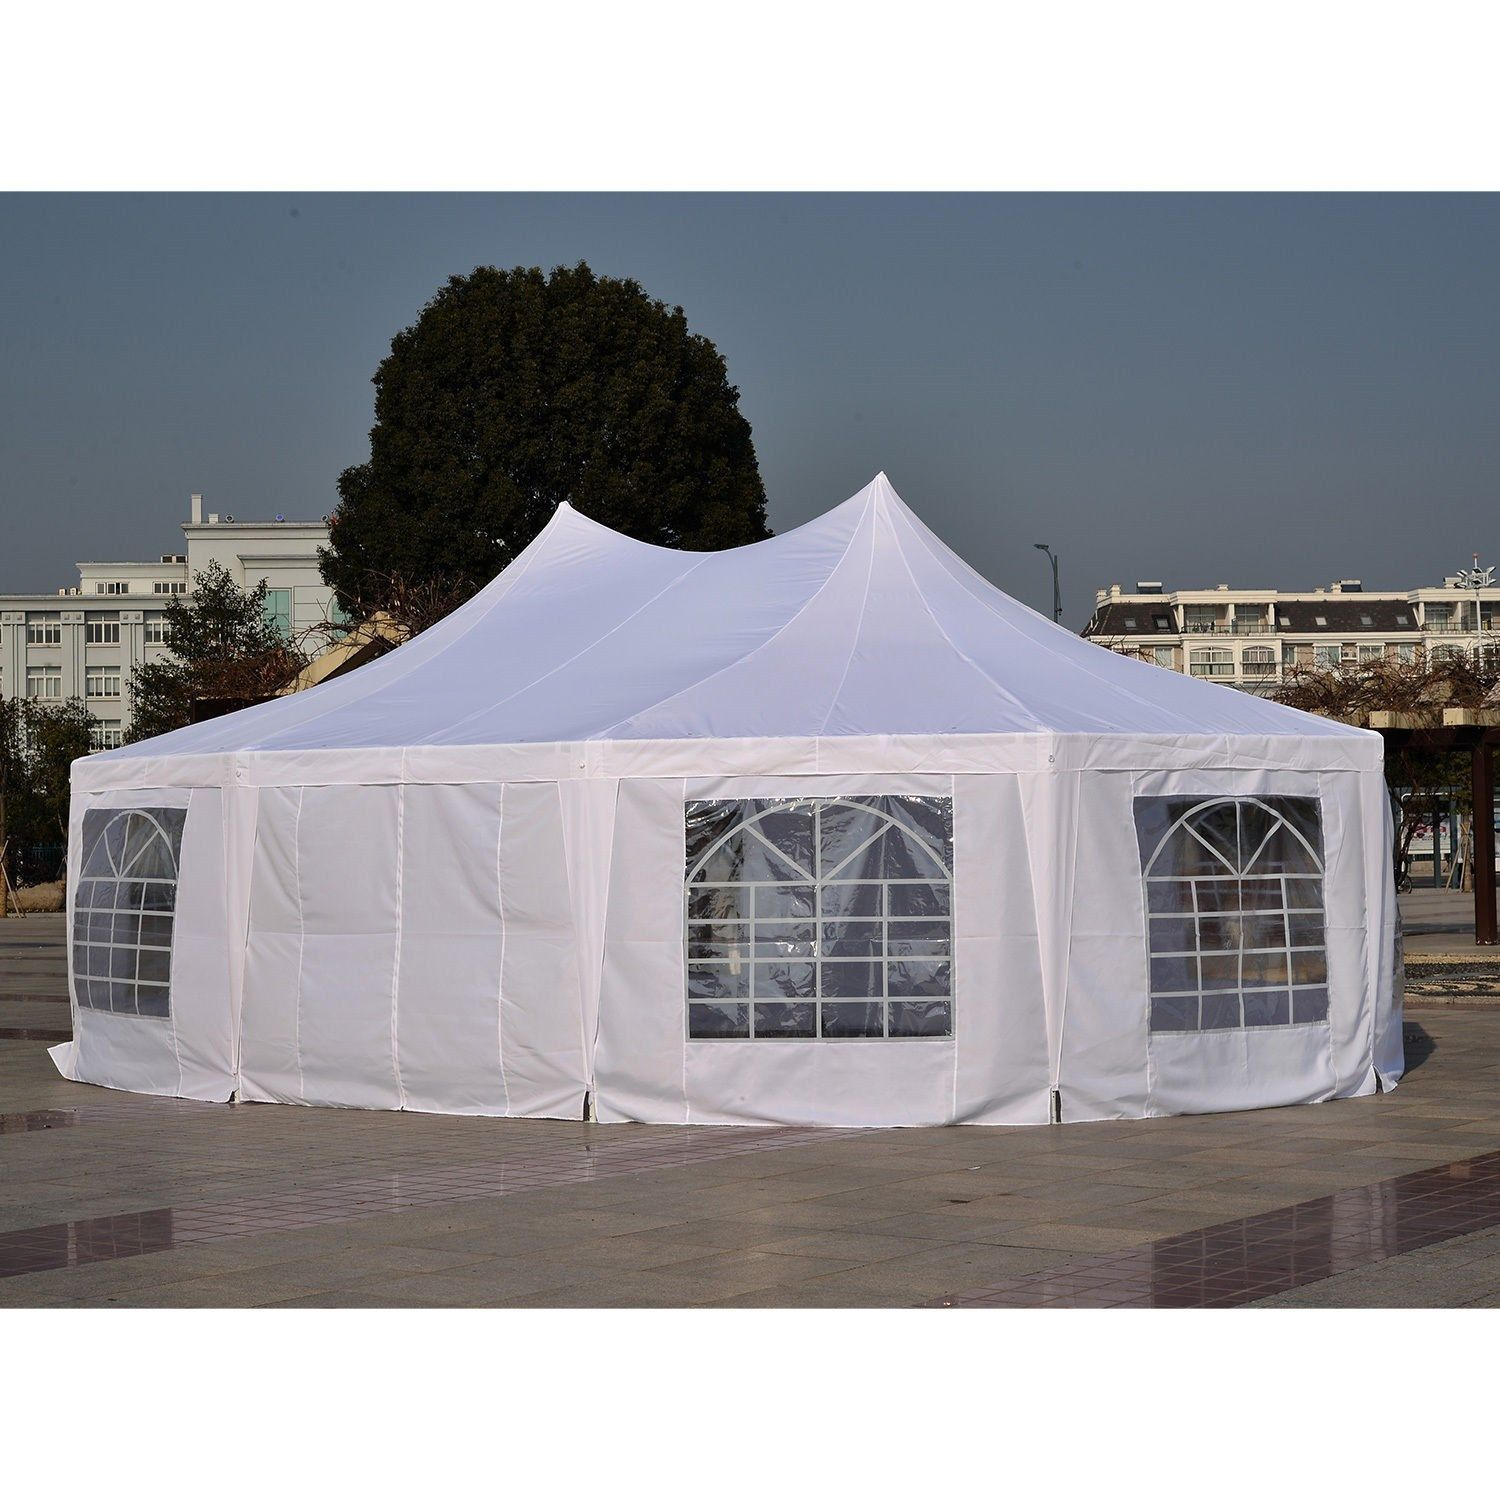 29 X 21 Heavy Duty Party Tent Canopy Gazebo Standard Or